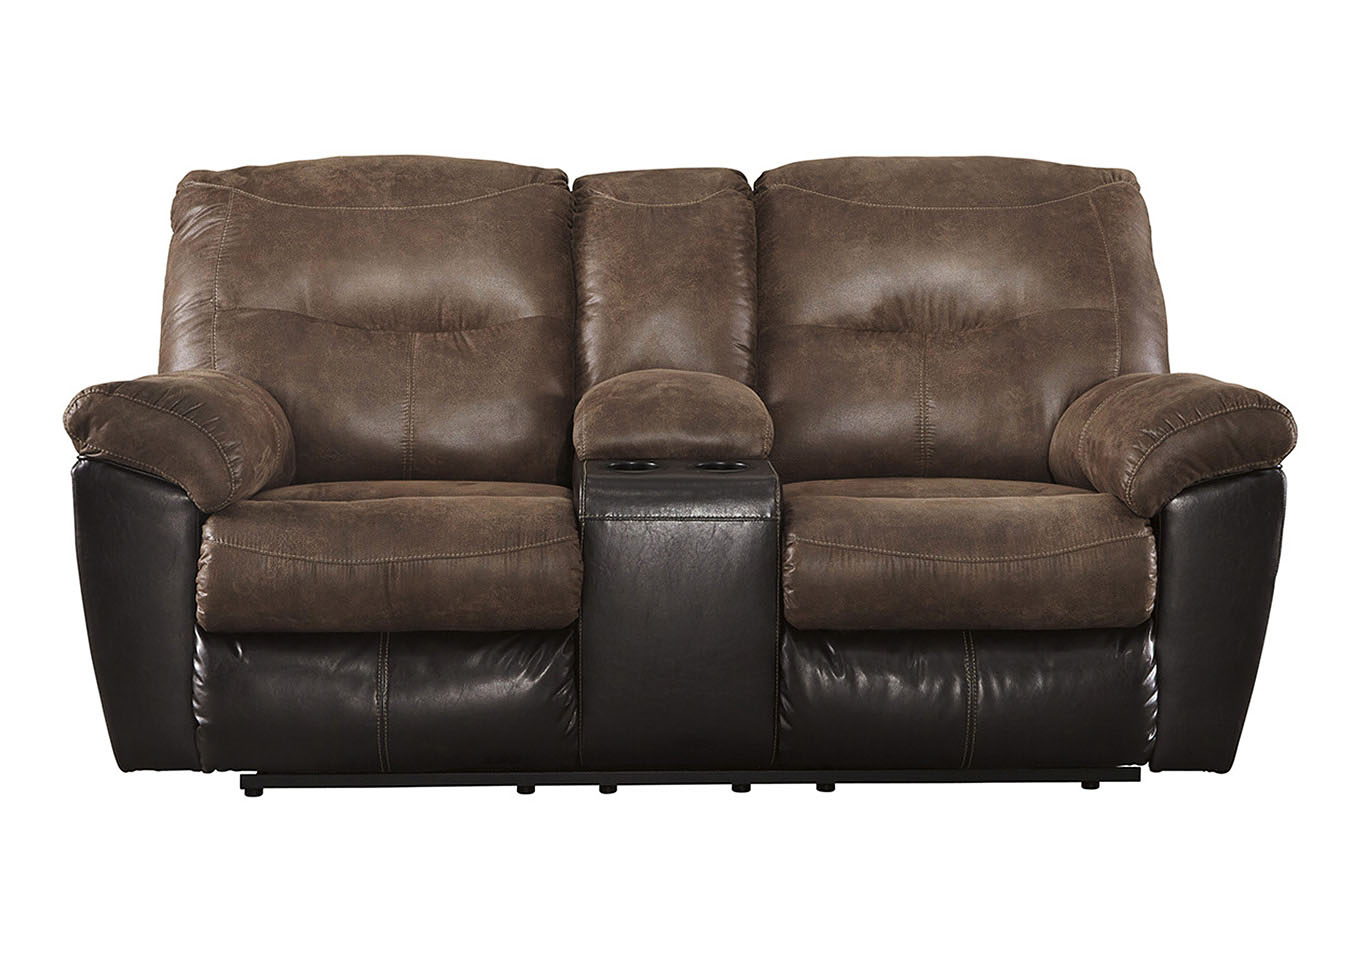 Follett Coffee Double Reclining Loveseat,Signature Design By Ashley